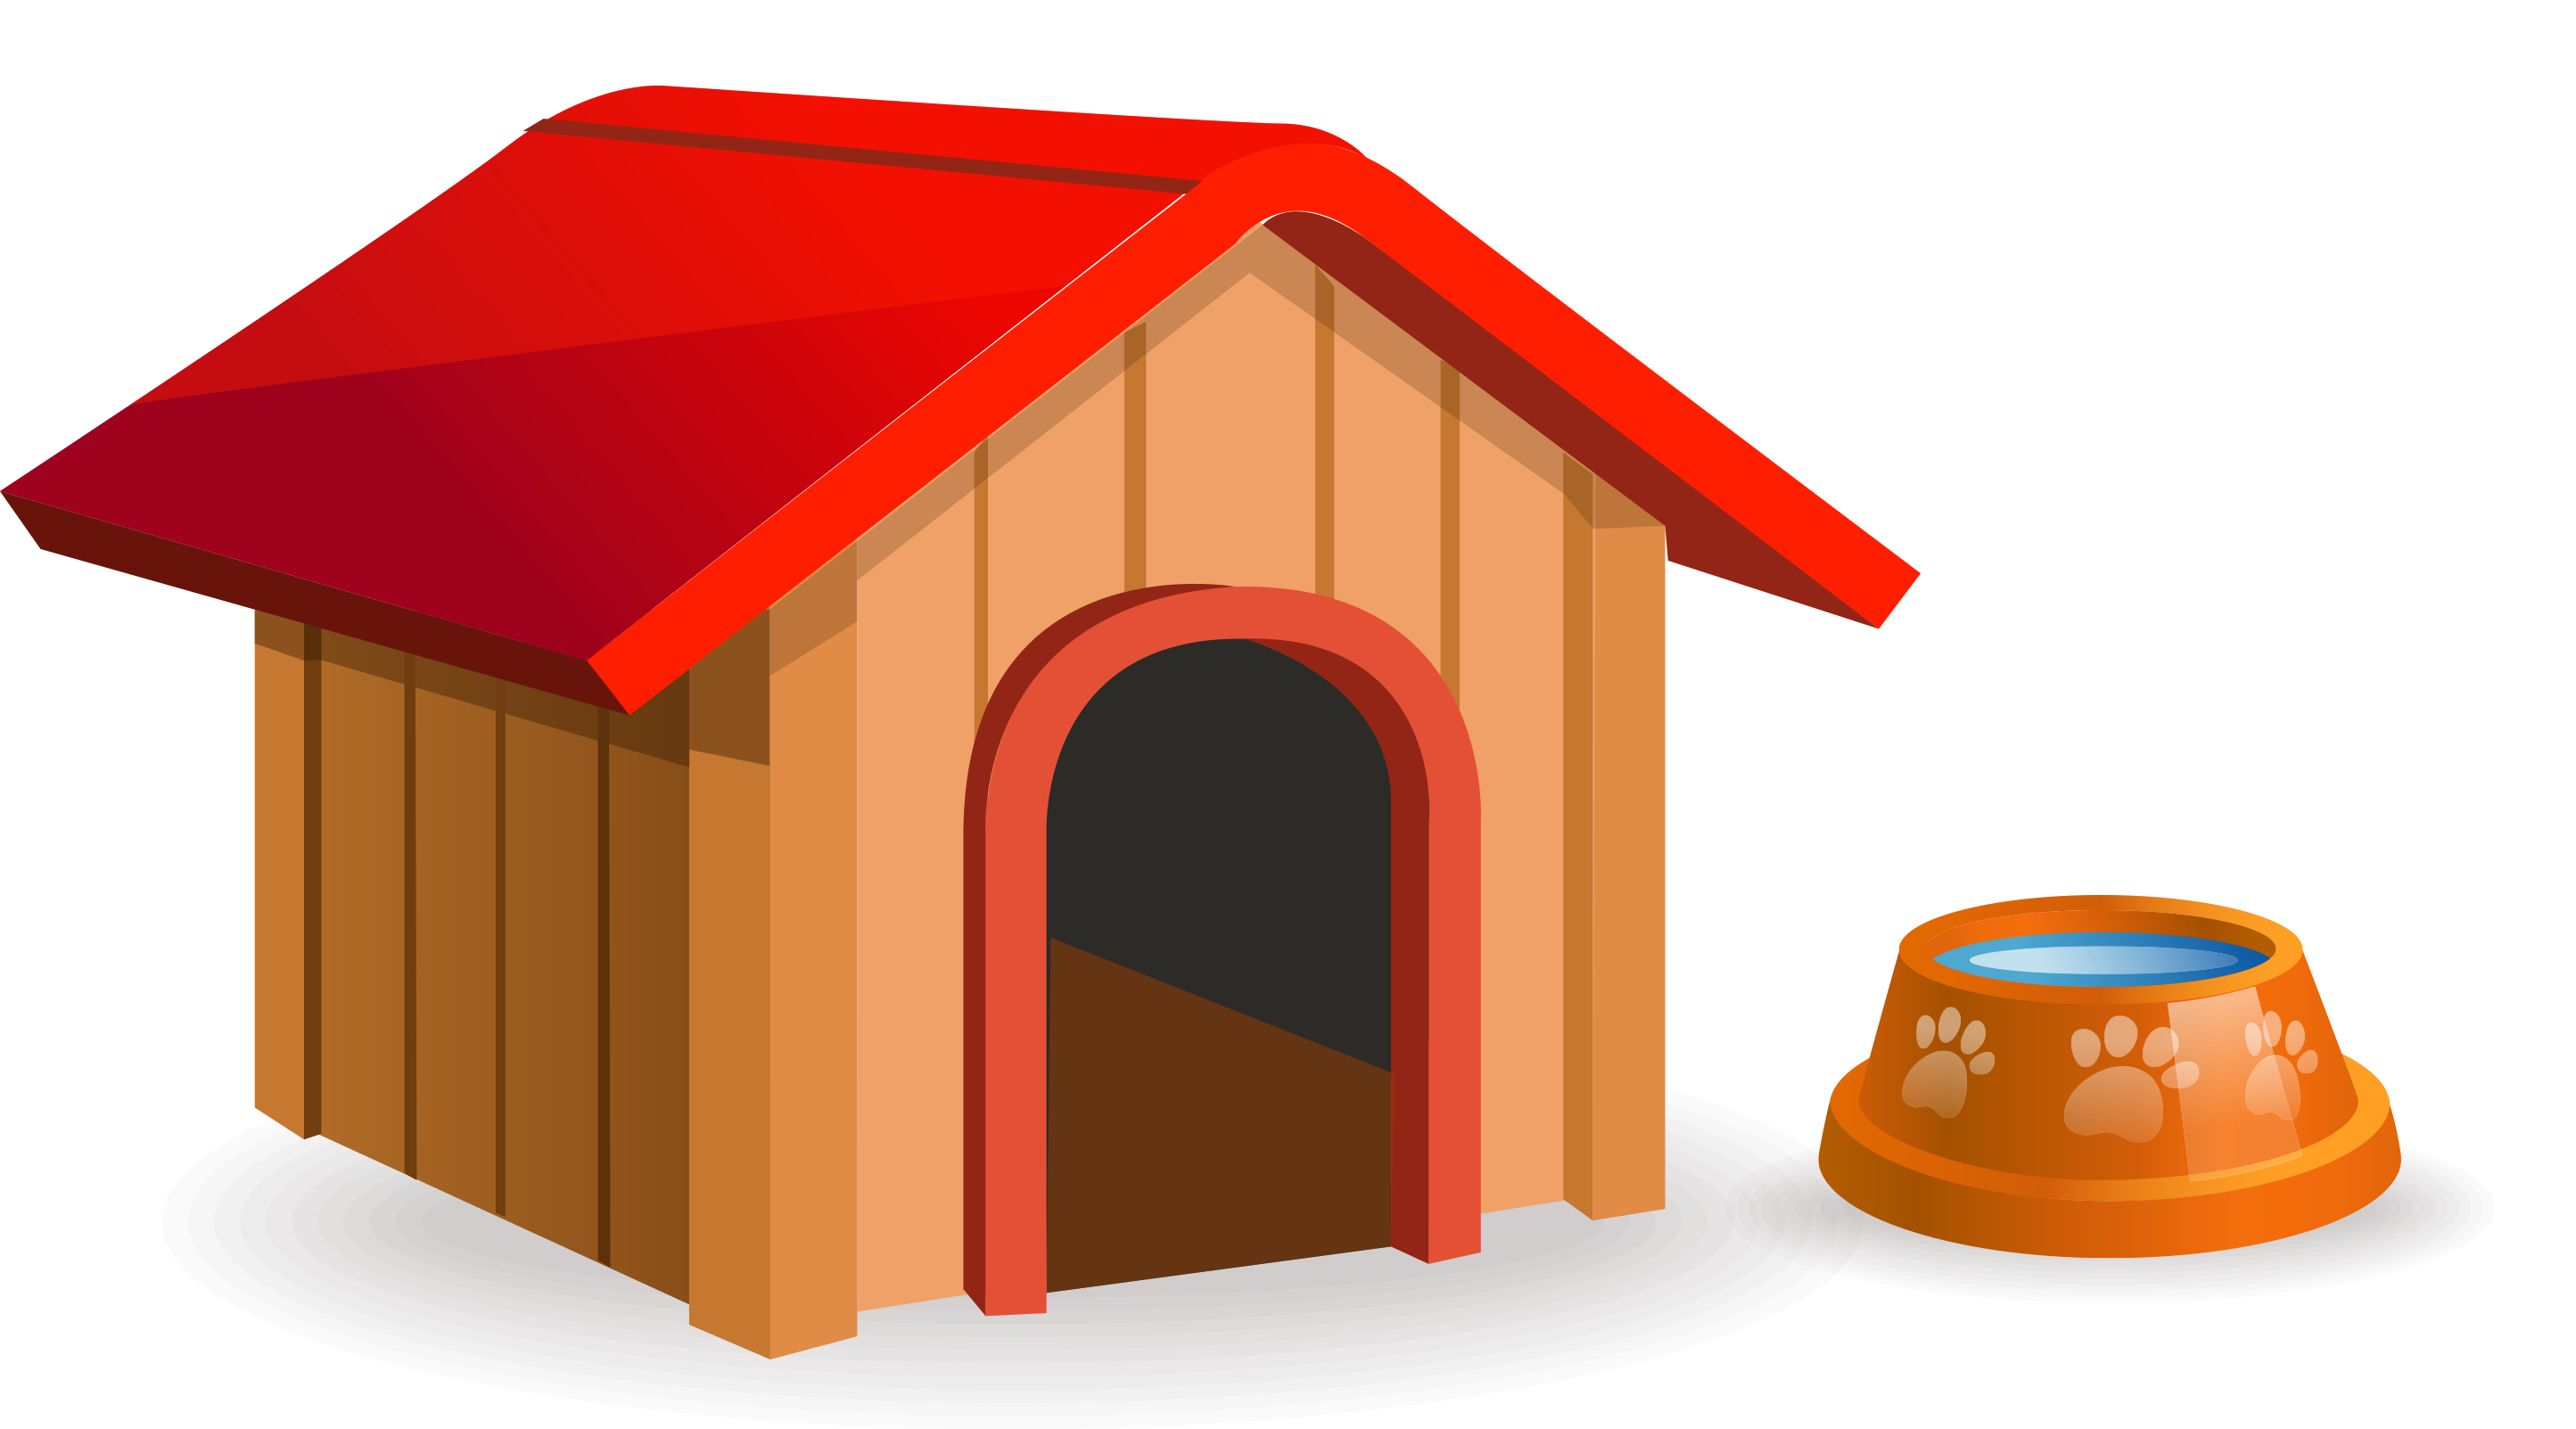 Doghouse Png